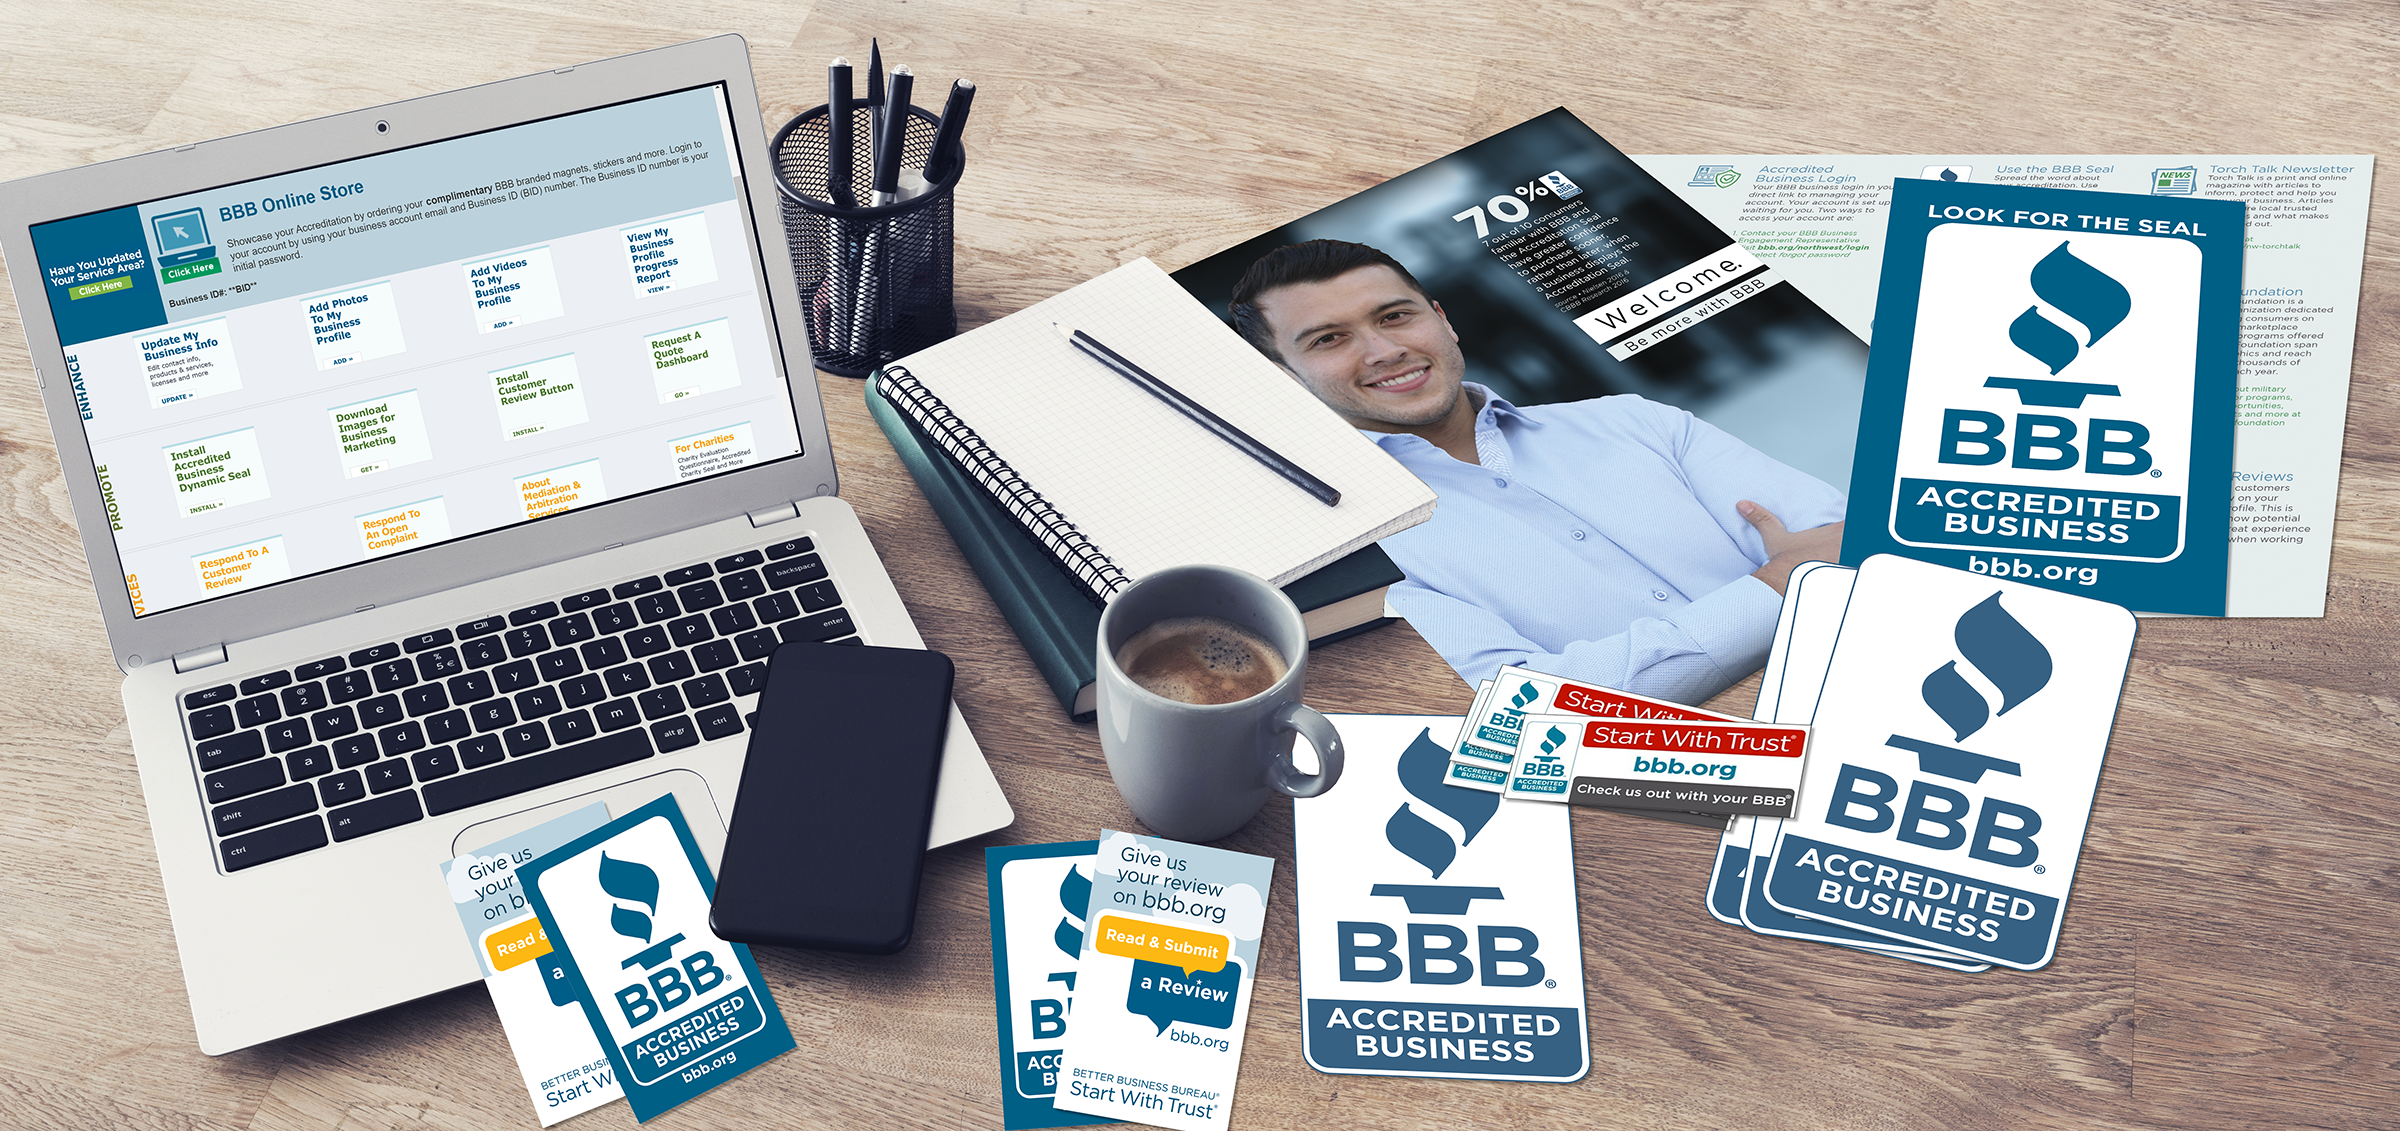 BBB Branded signage for accredited businesses